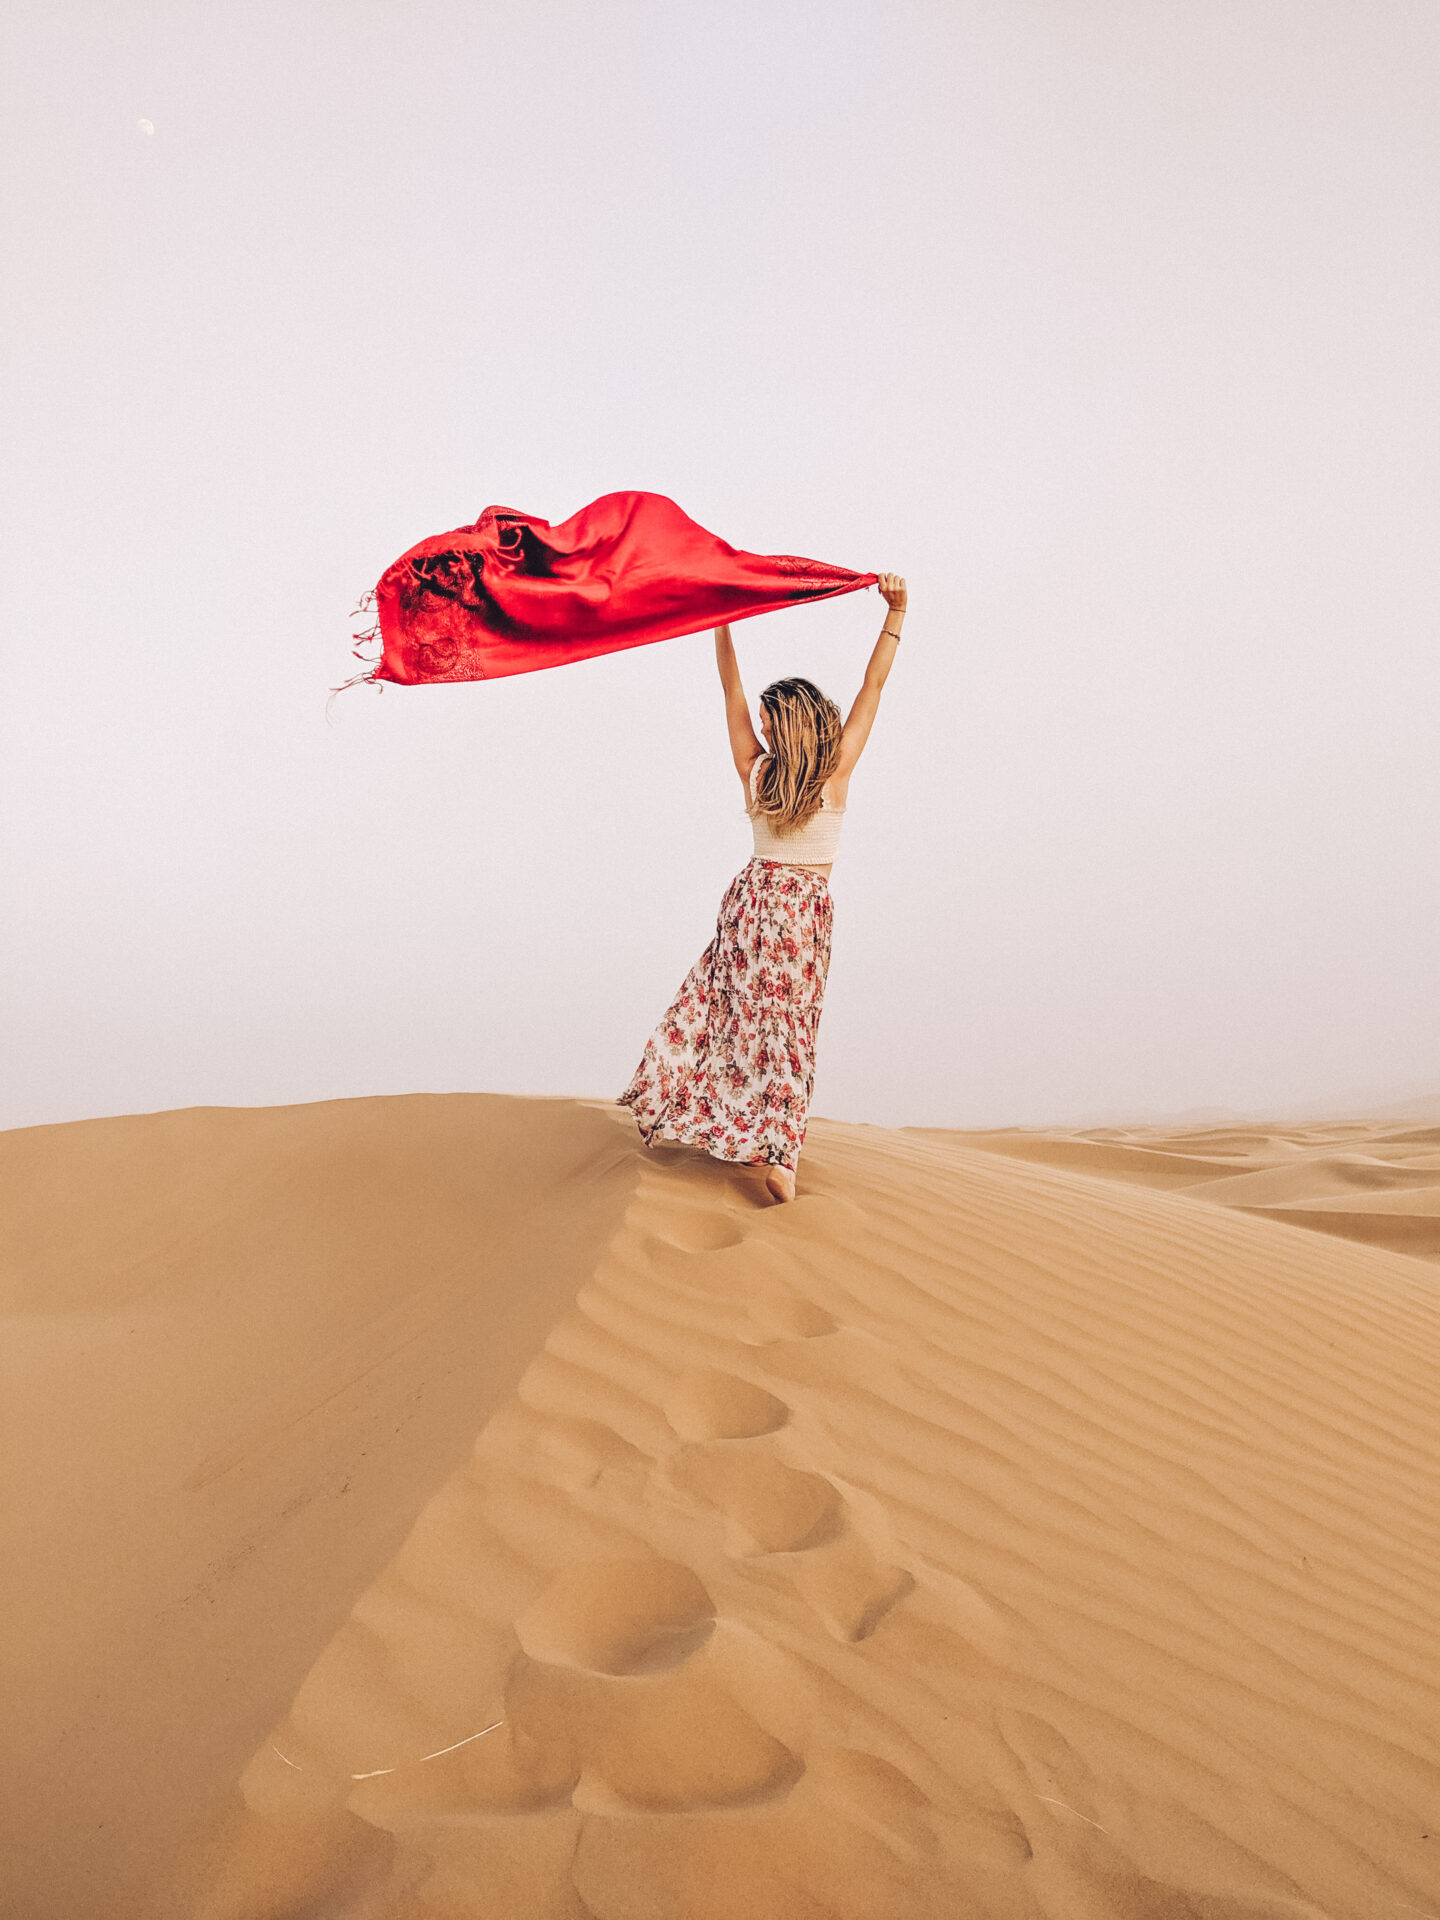 A 3 Day Guide to Camping in the Sahara